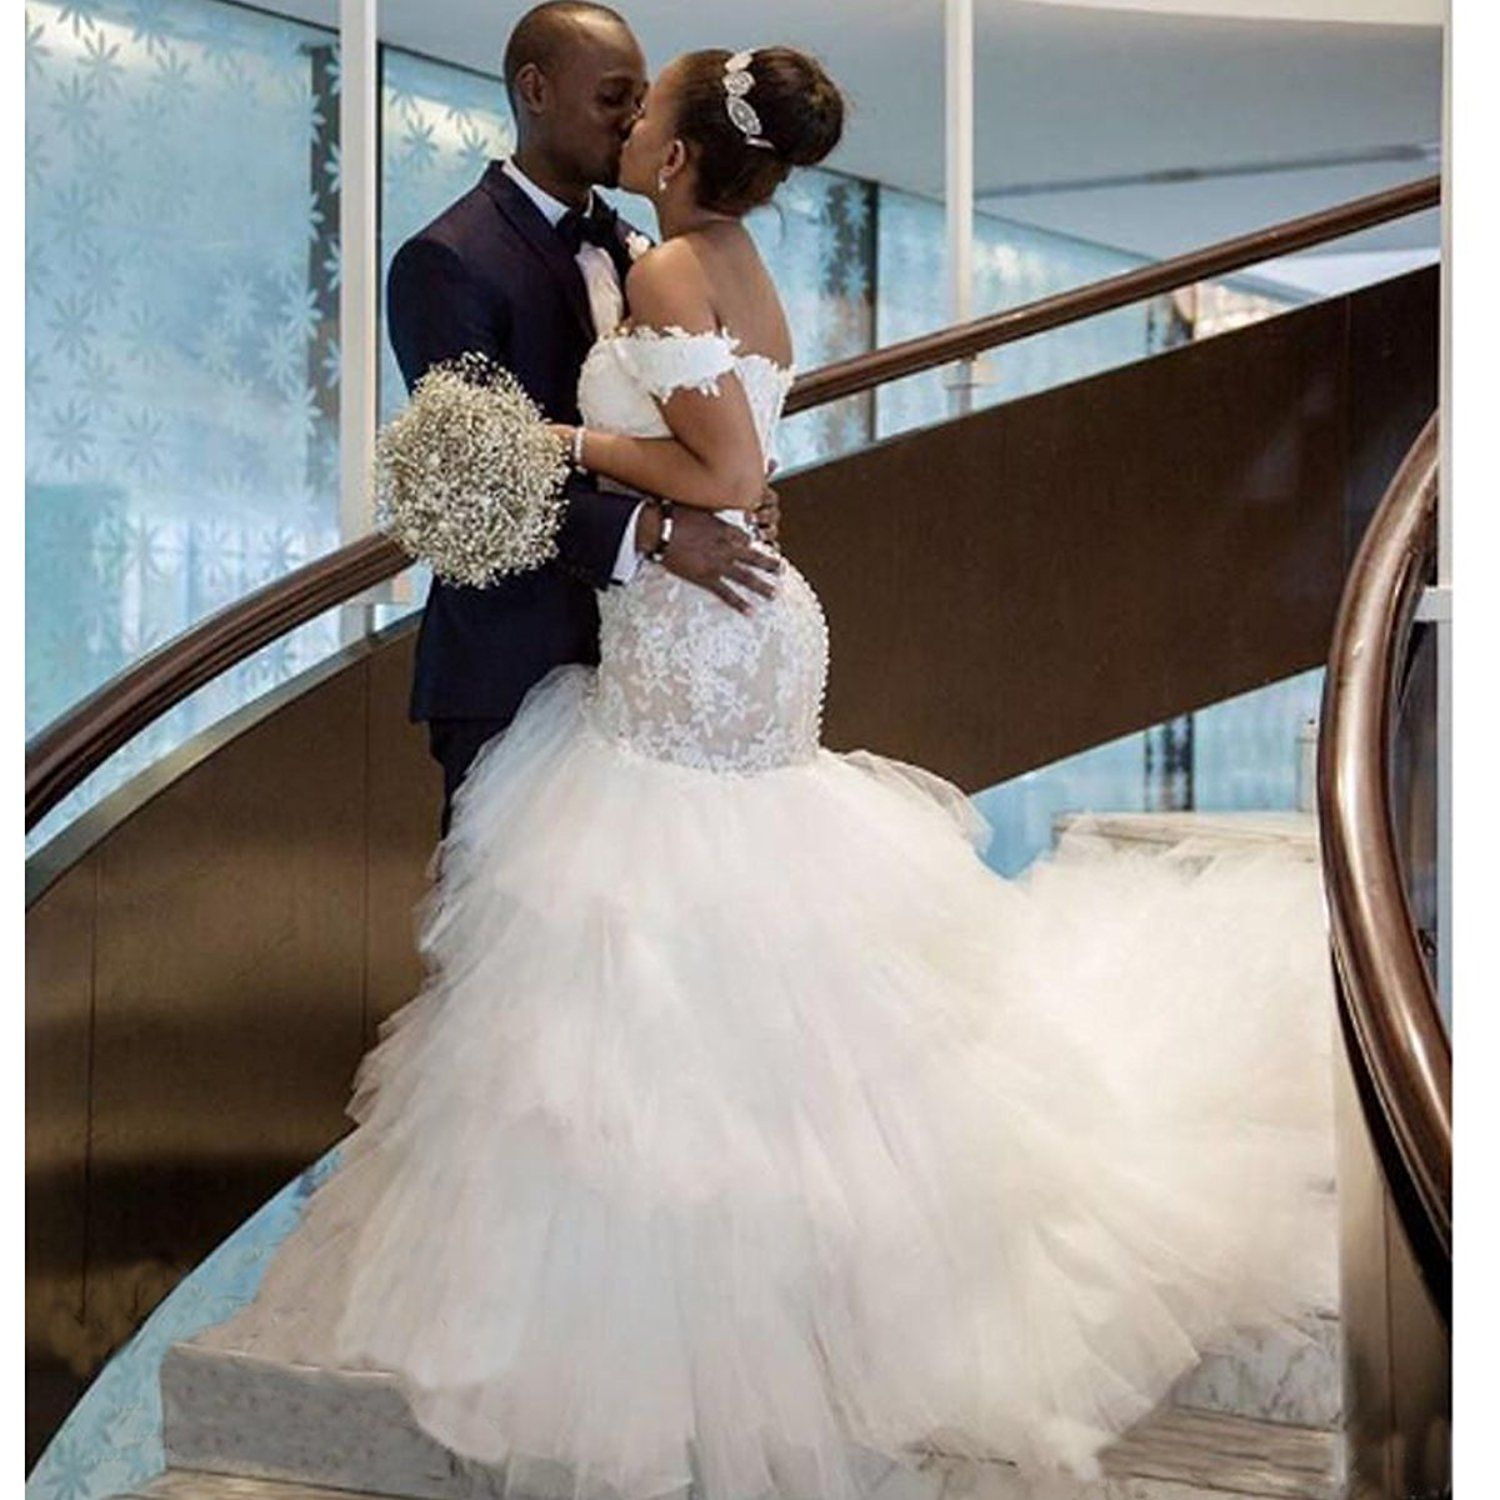 Yuxin Modest Mermaid Wedding Dresses 2018 Off Shoulder Ruffles Tulle Lace Bridal Gowns At Amazon 159 W Ball Gowns Wedding Bridal Gowns Mermaid Wedding Dresses